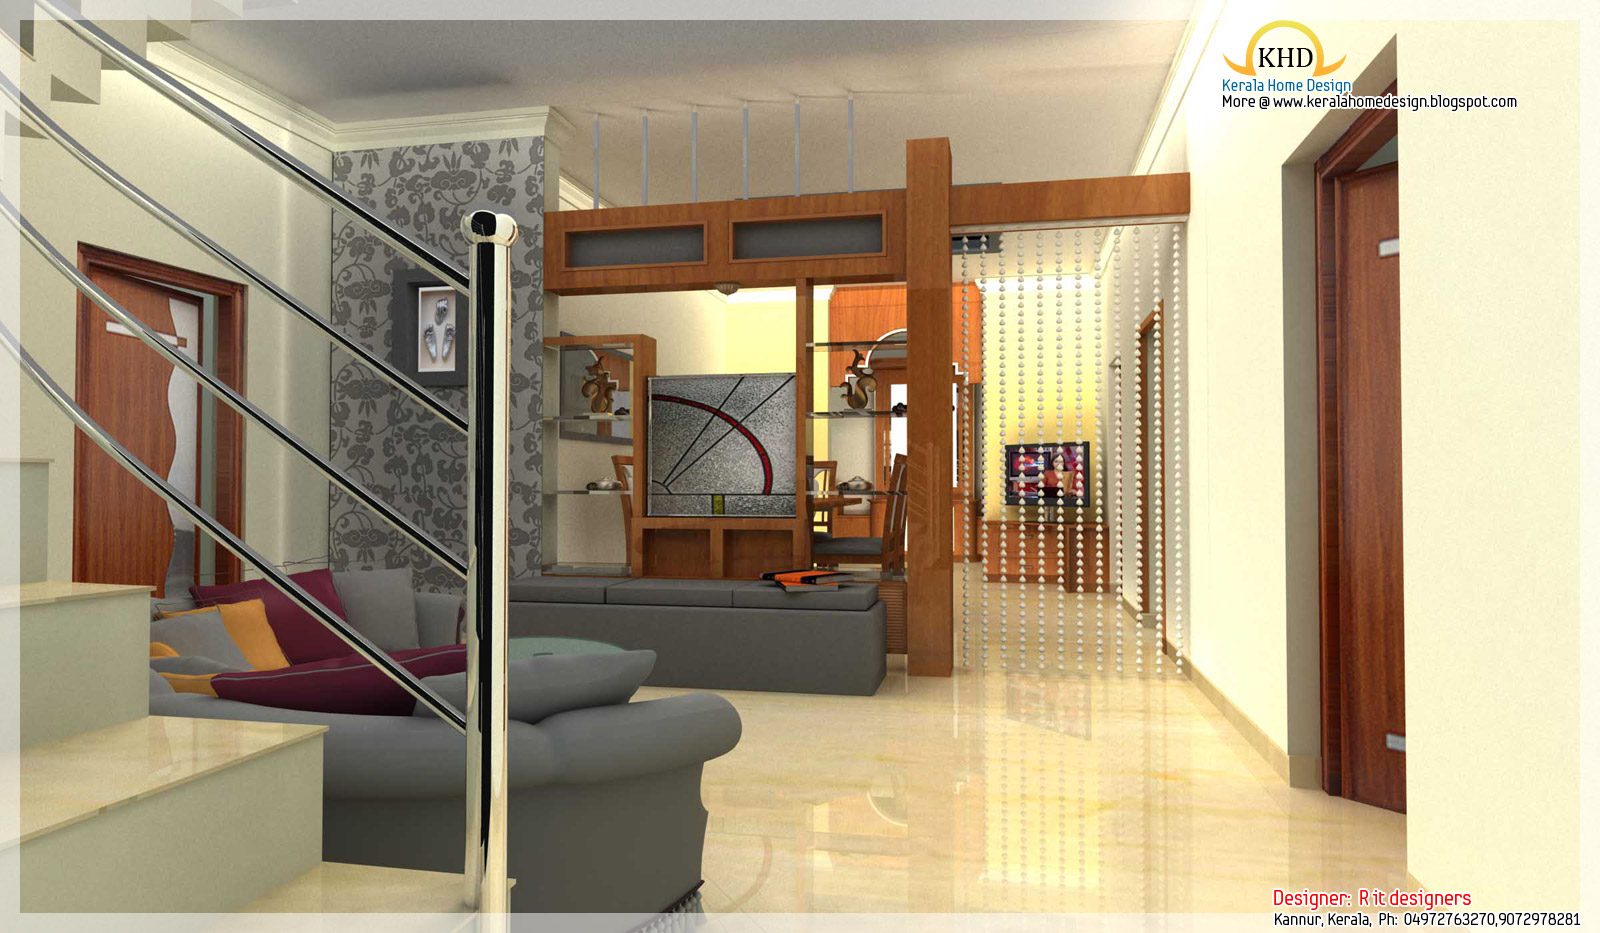 Home Interior Design Ideas Kerala: 3D Interior Designs